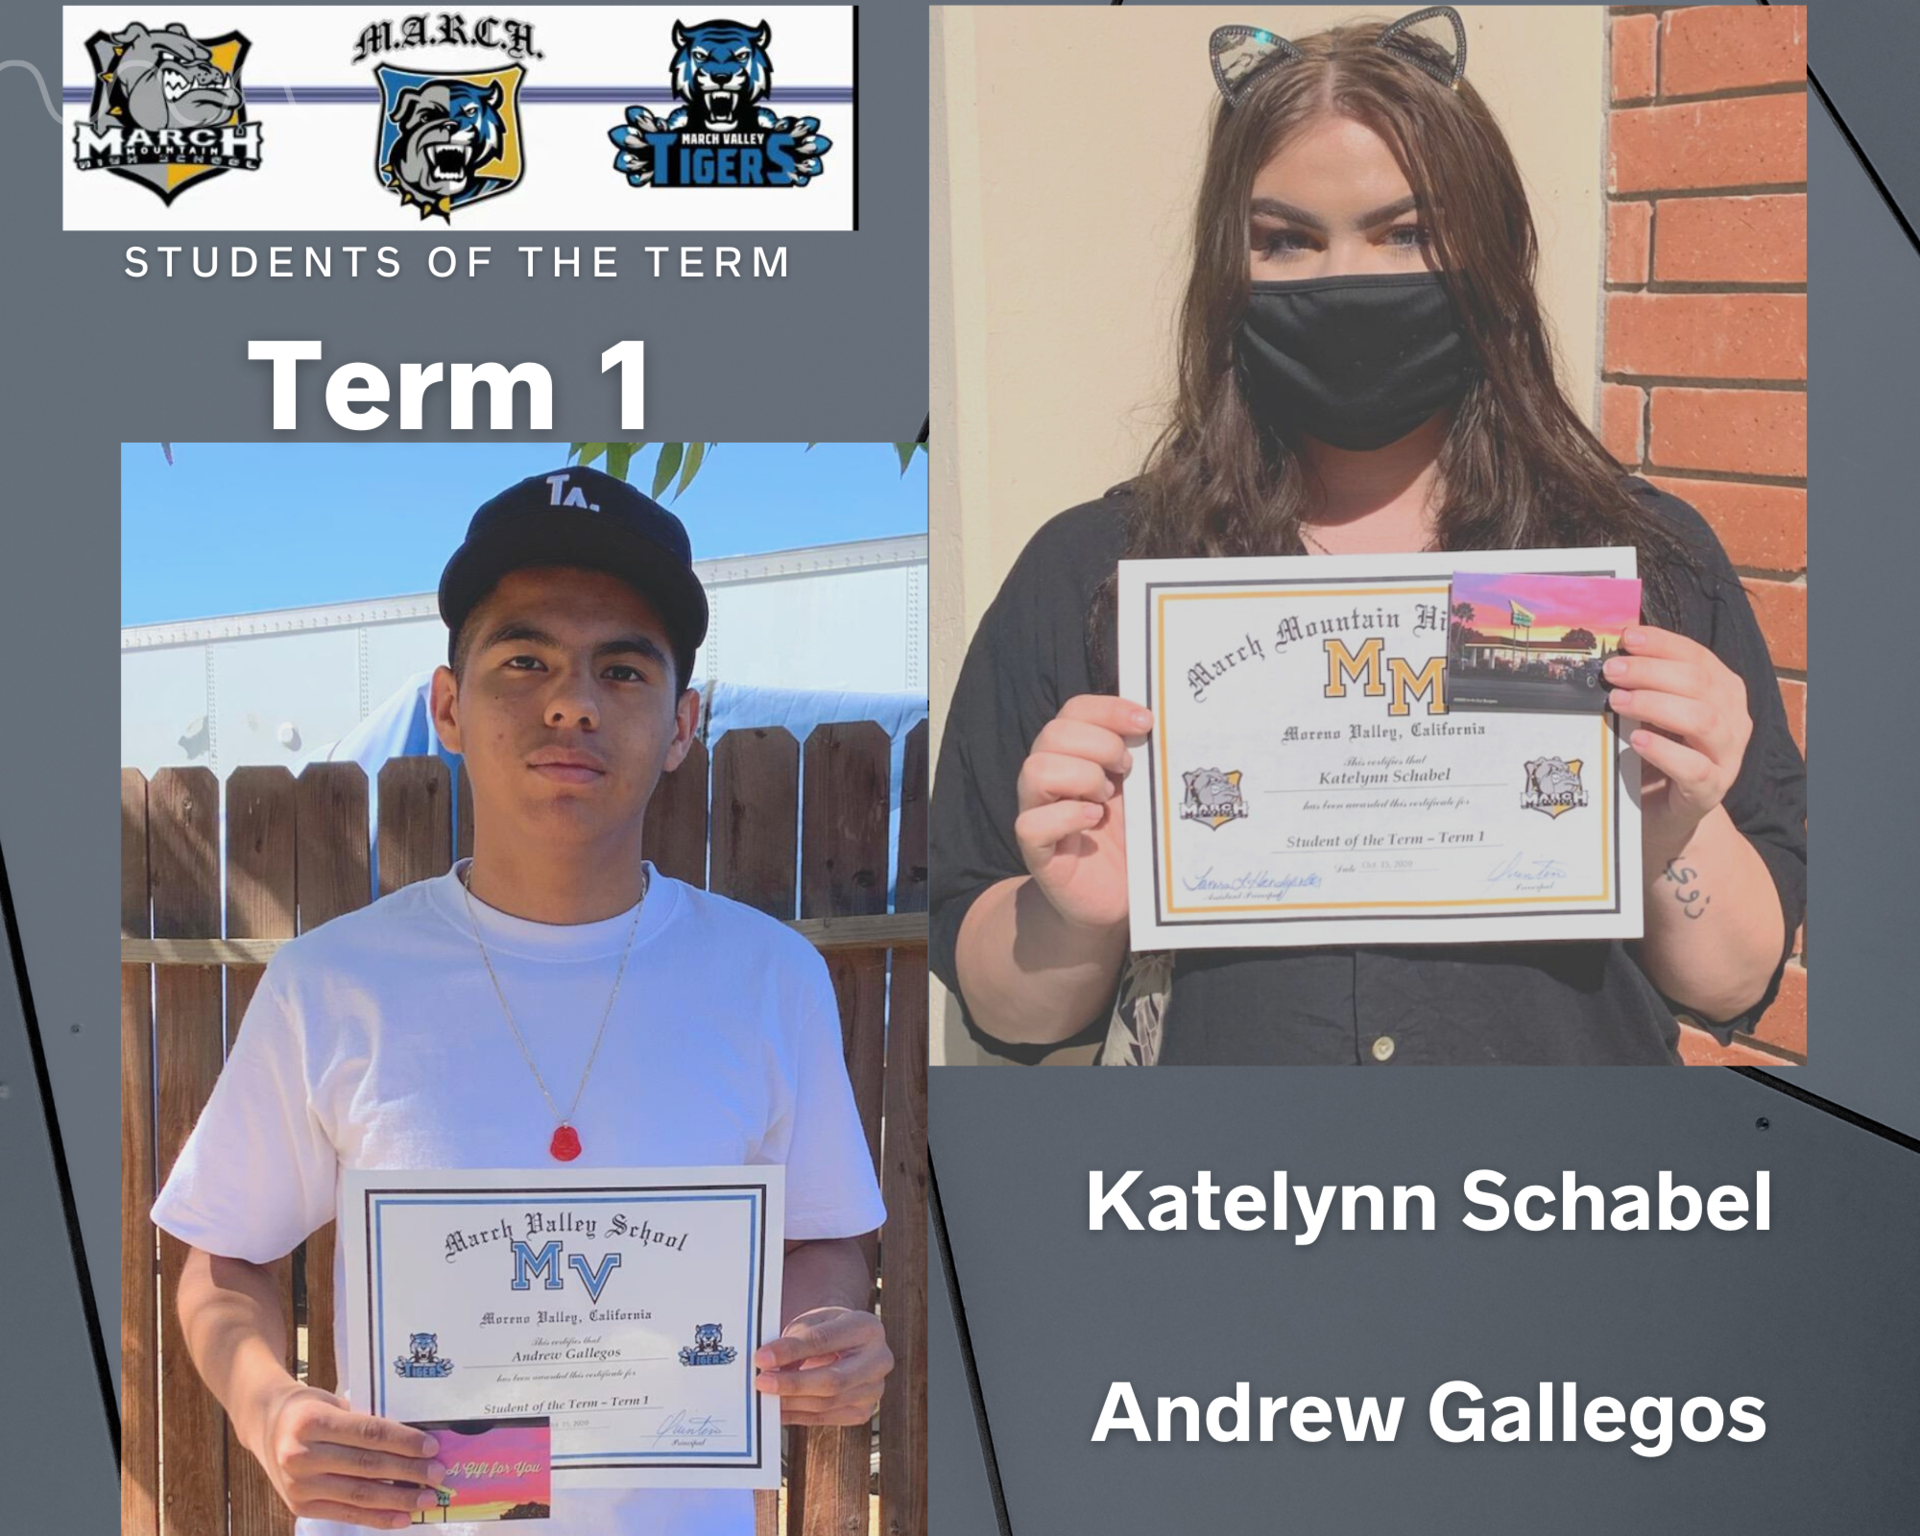 Team MARCH: Students of the Term-Term 1